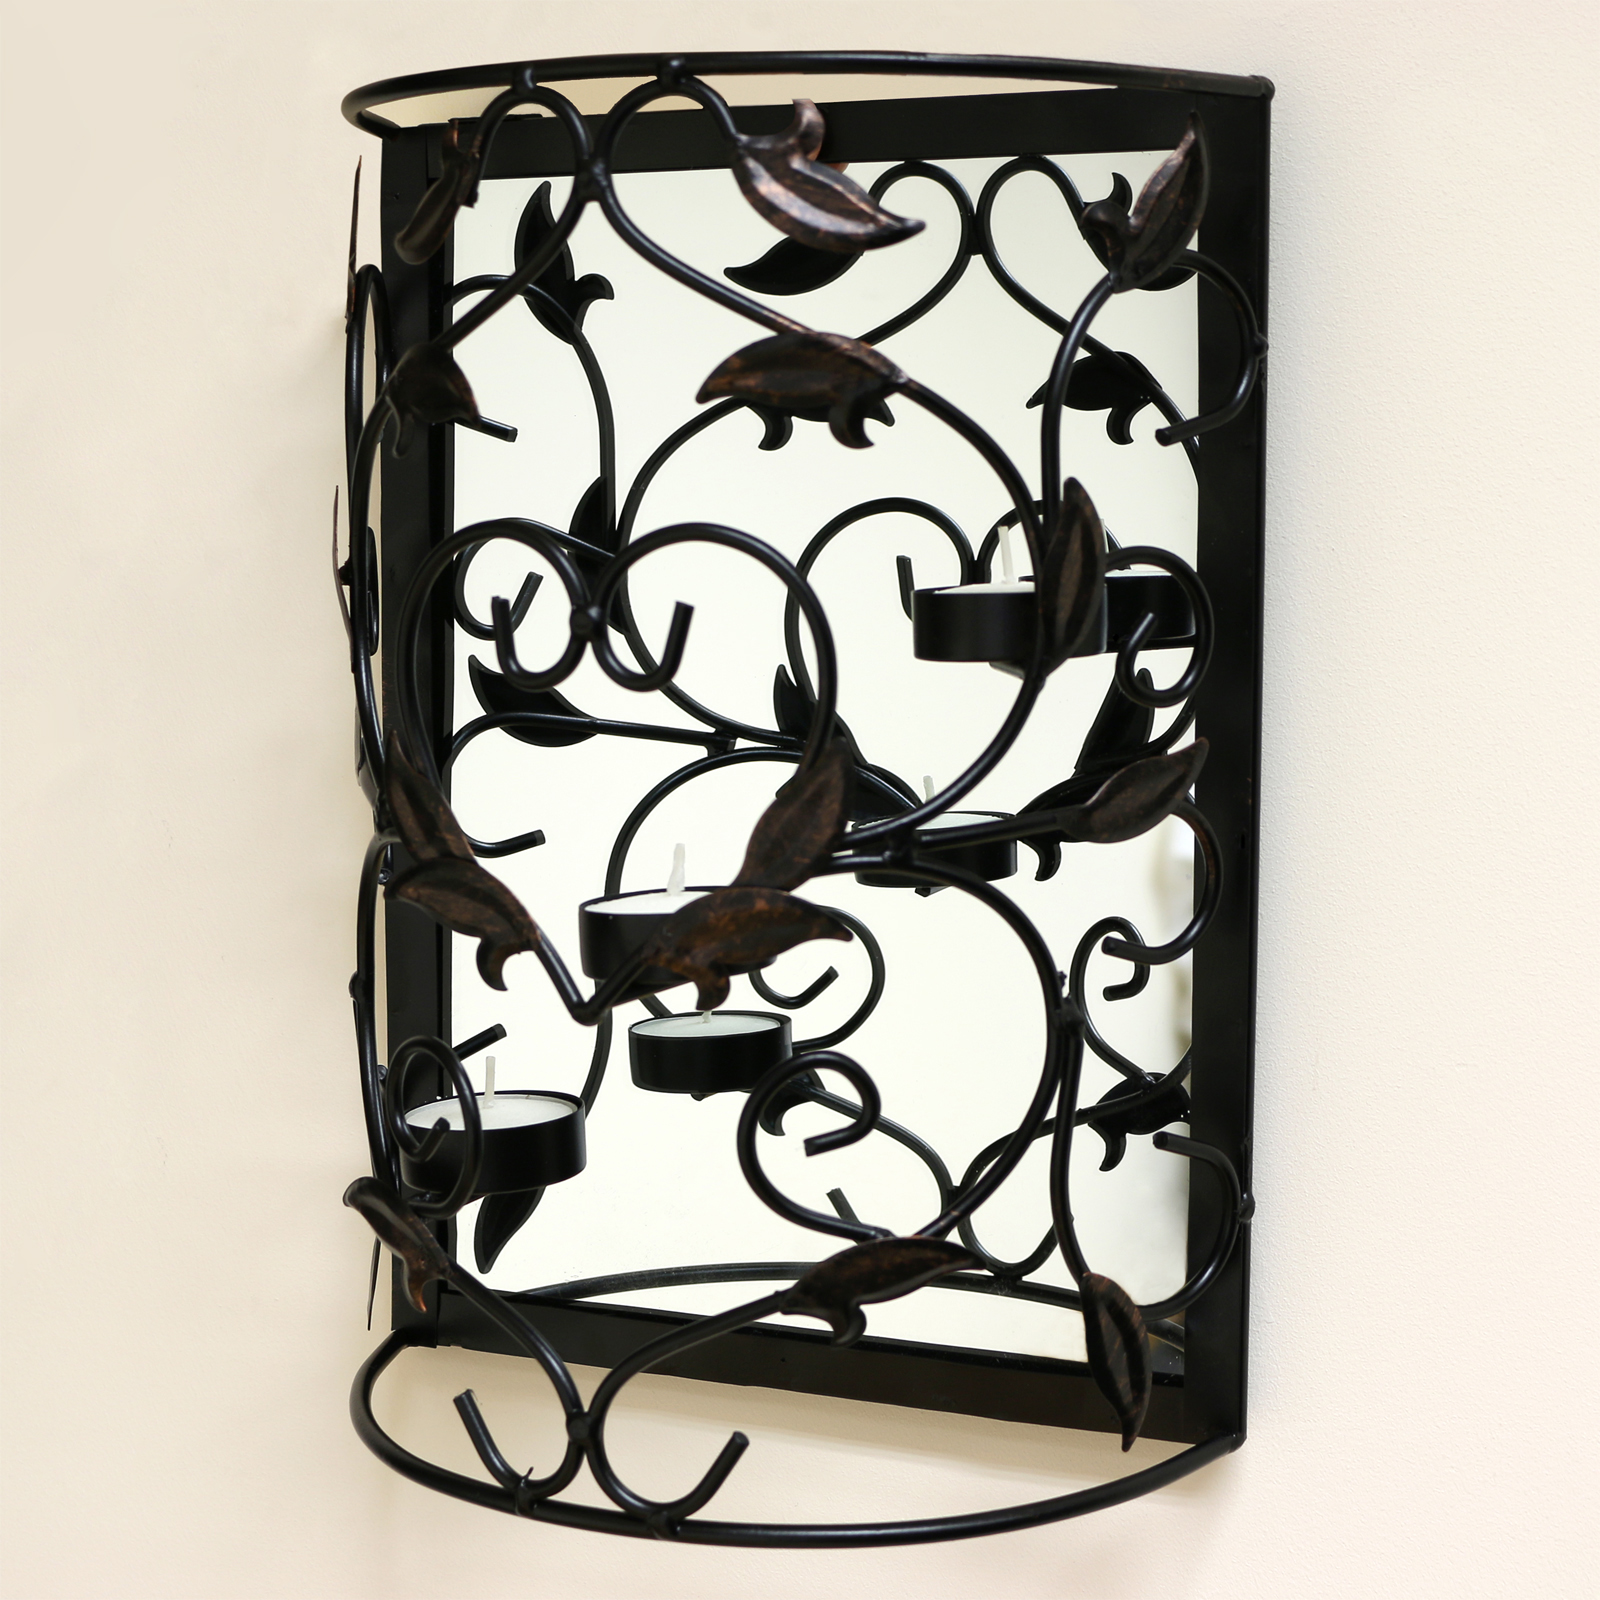 Wall Mounted Metal Candle Holder with Mirror/Sconce/Shabby ... on Decorative Wall Sconces Candle Holders Centerpieces Ebay id=64539